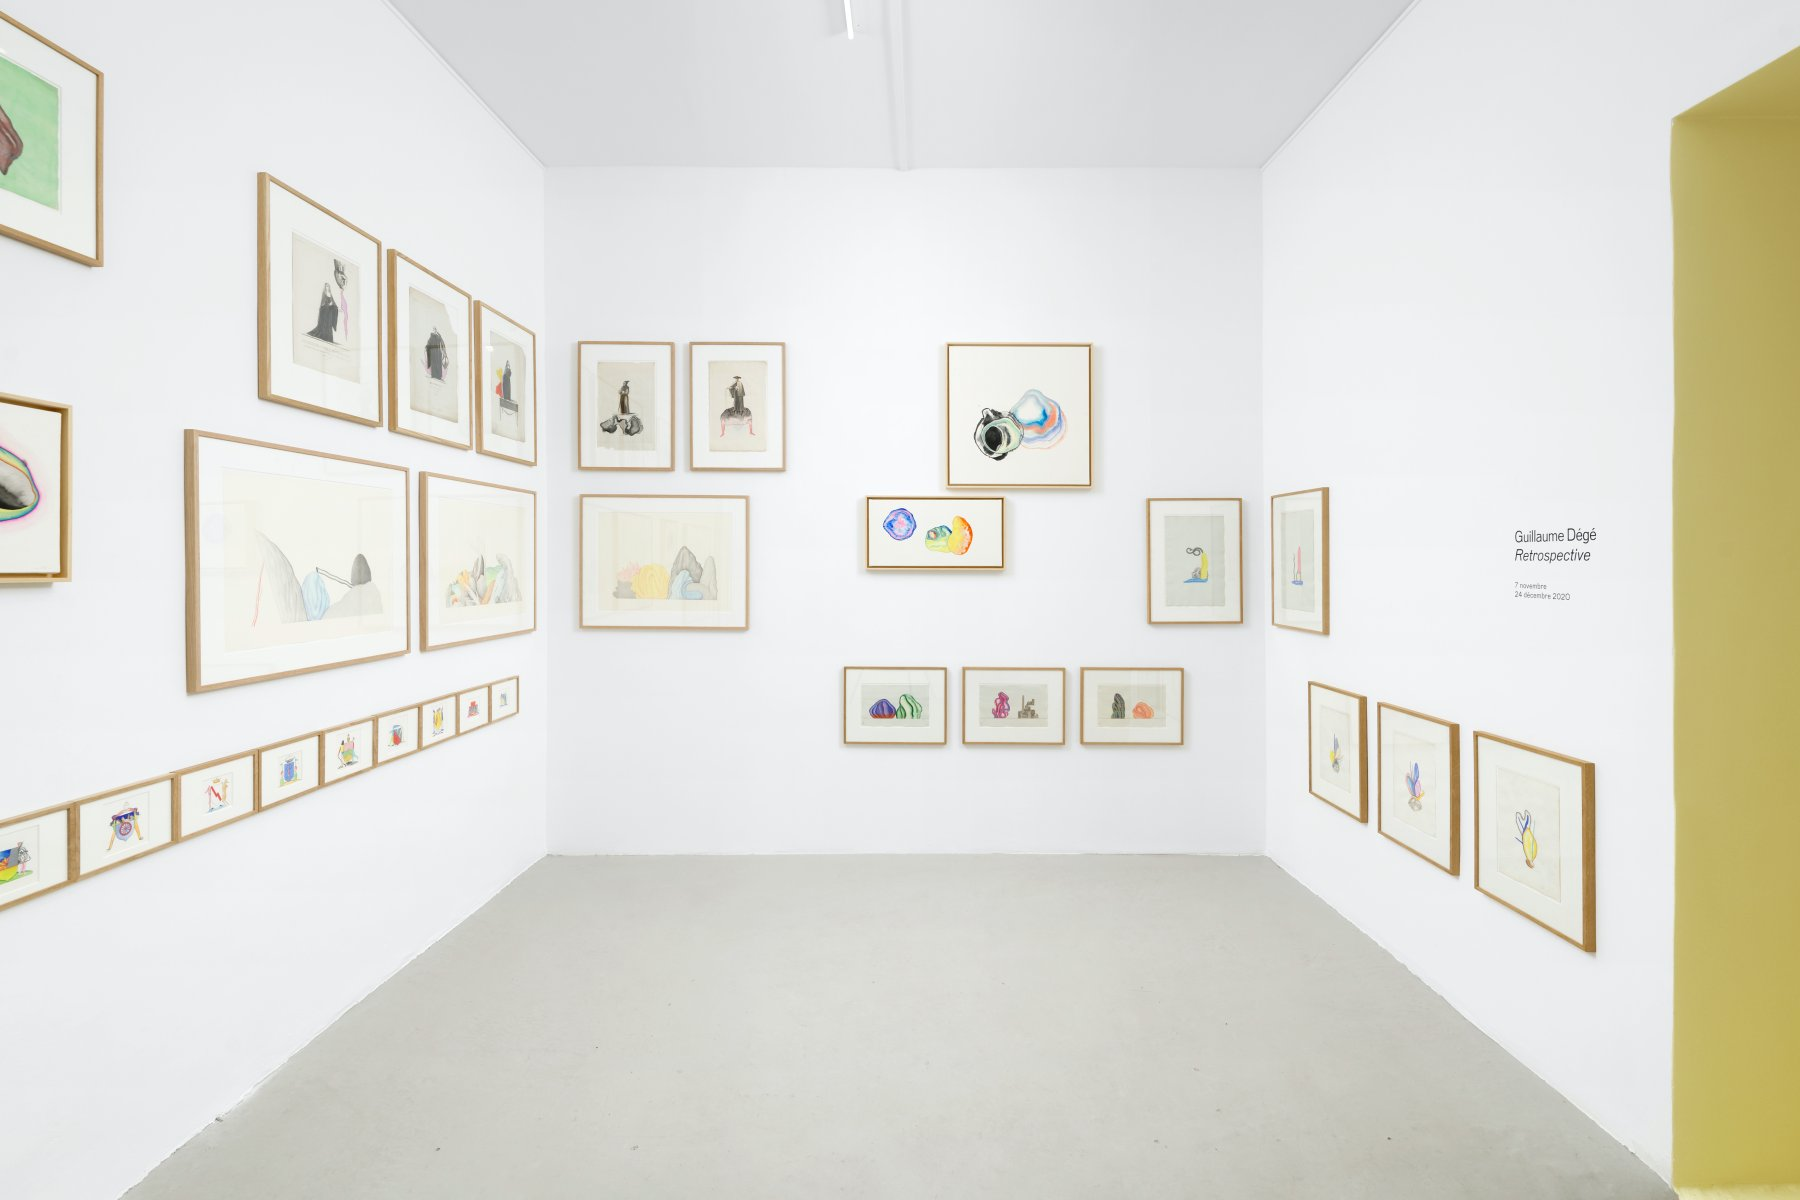 Semiose Project Room Guillaume Dege 1